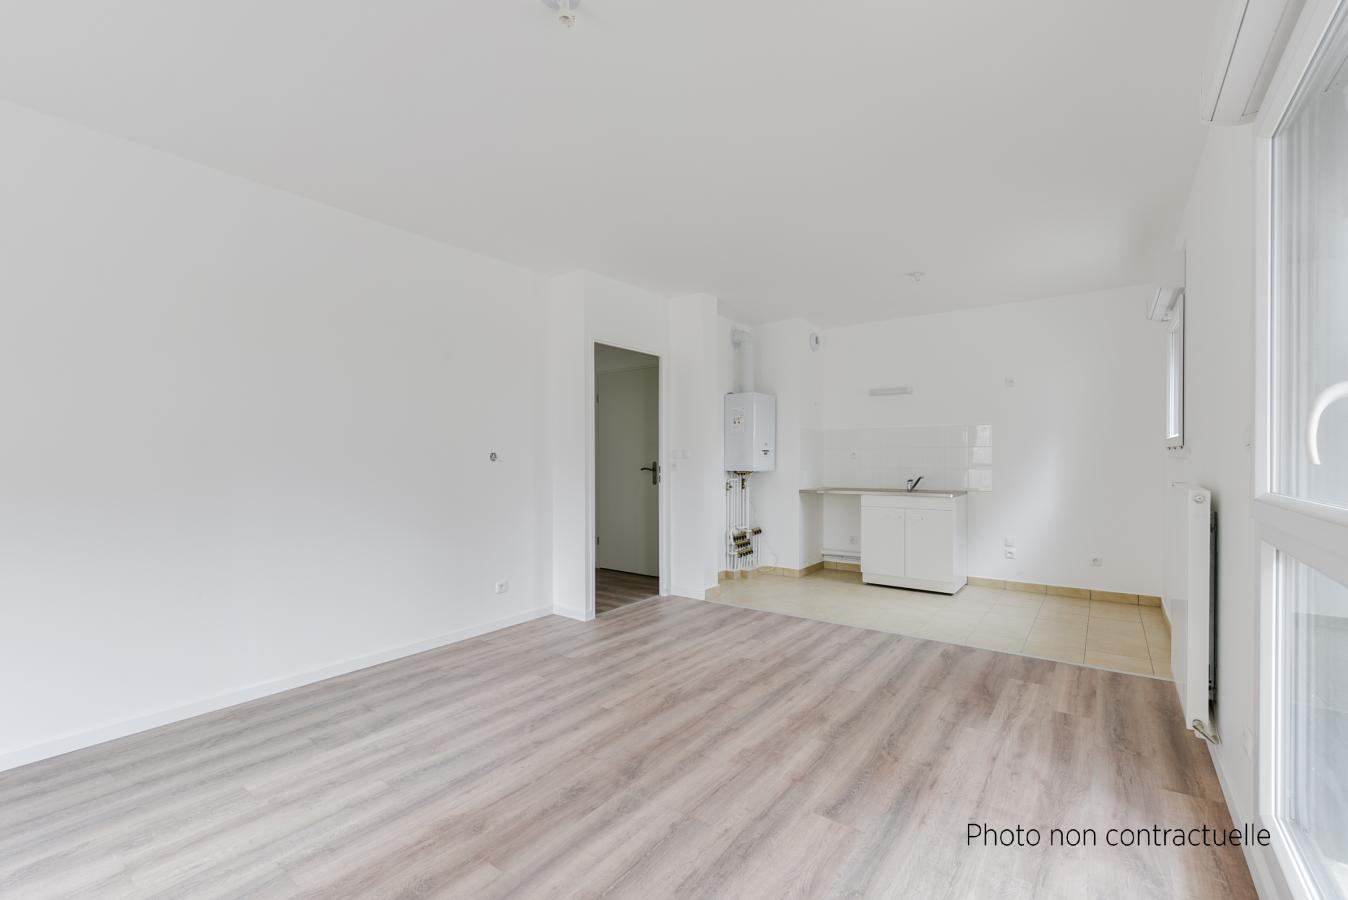 Achat Appartement Herblay Location Appartement Et Maison Herblay 95220